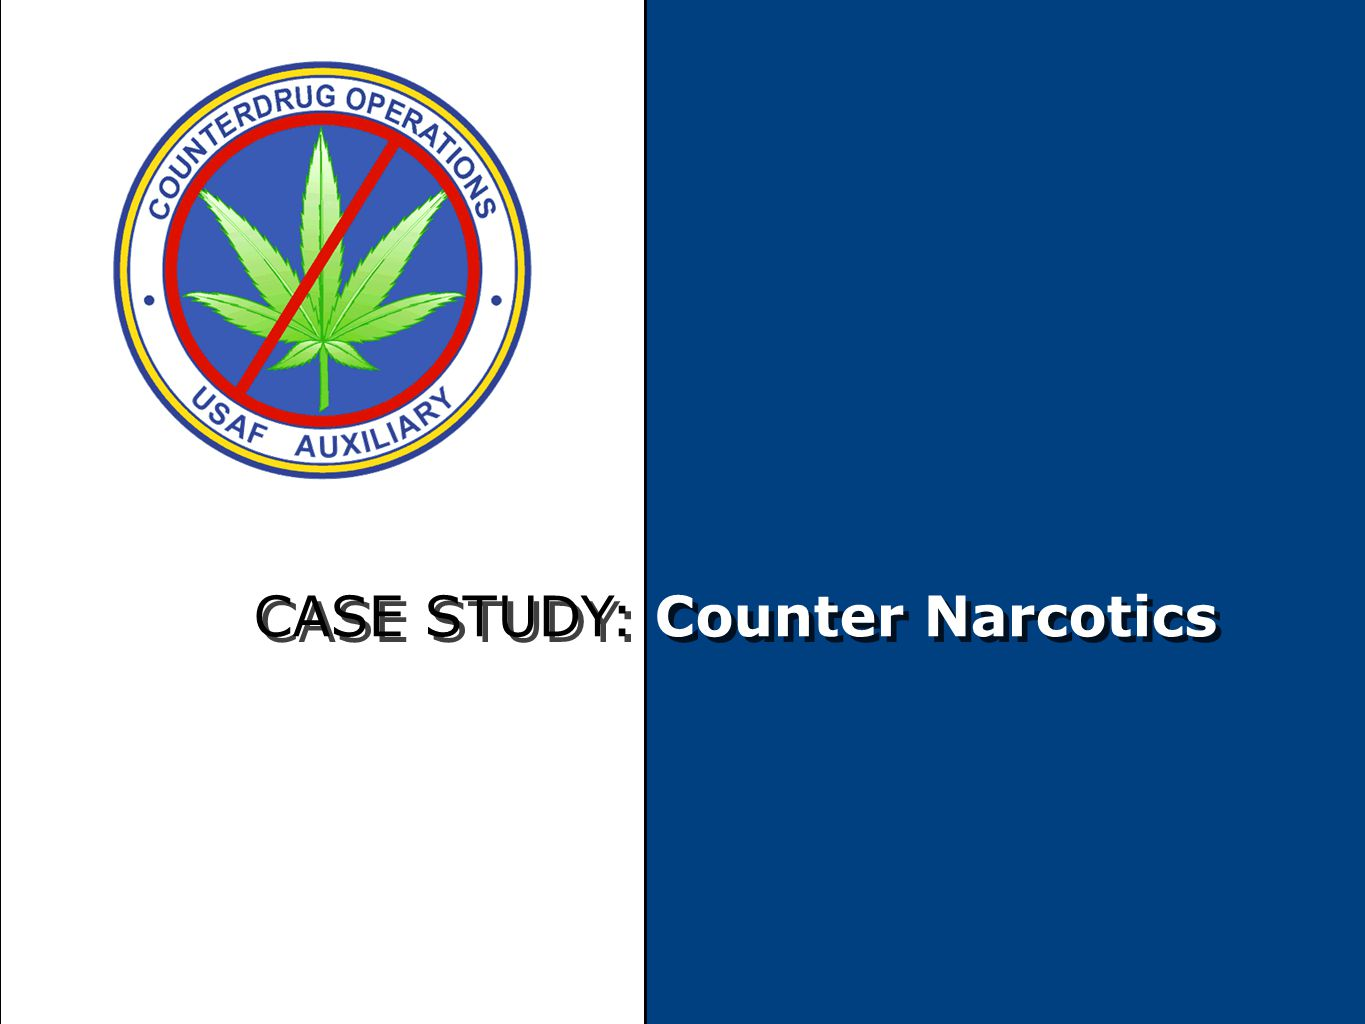 CASE STUDY: Counter Narcotics